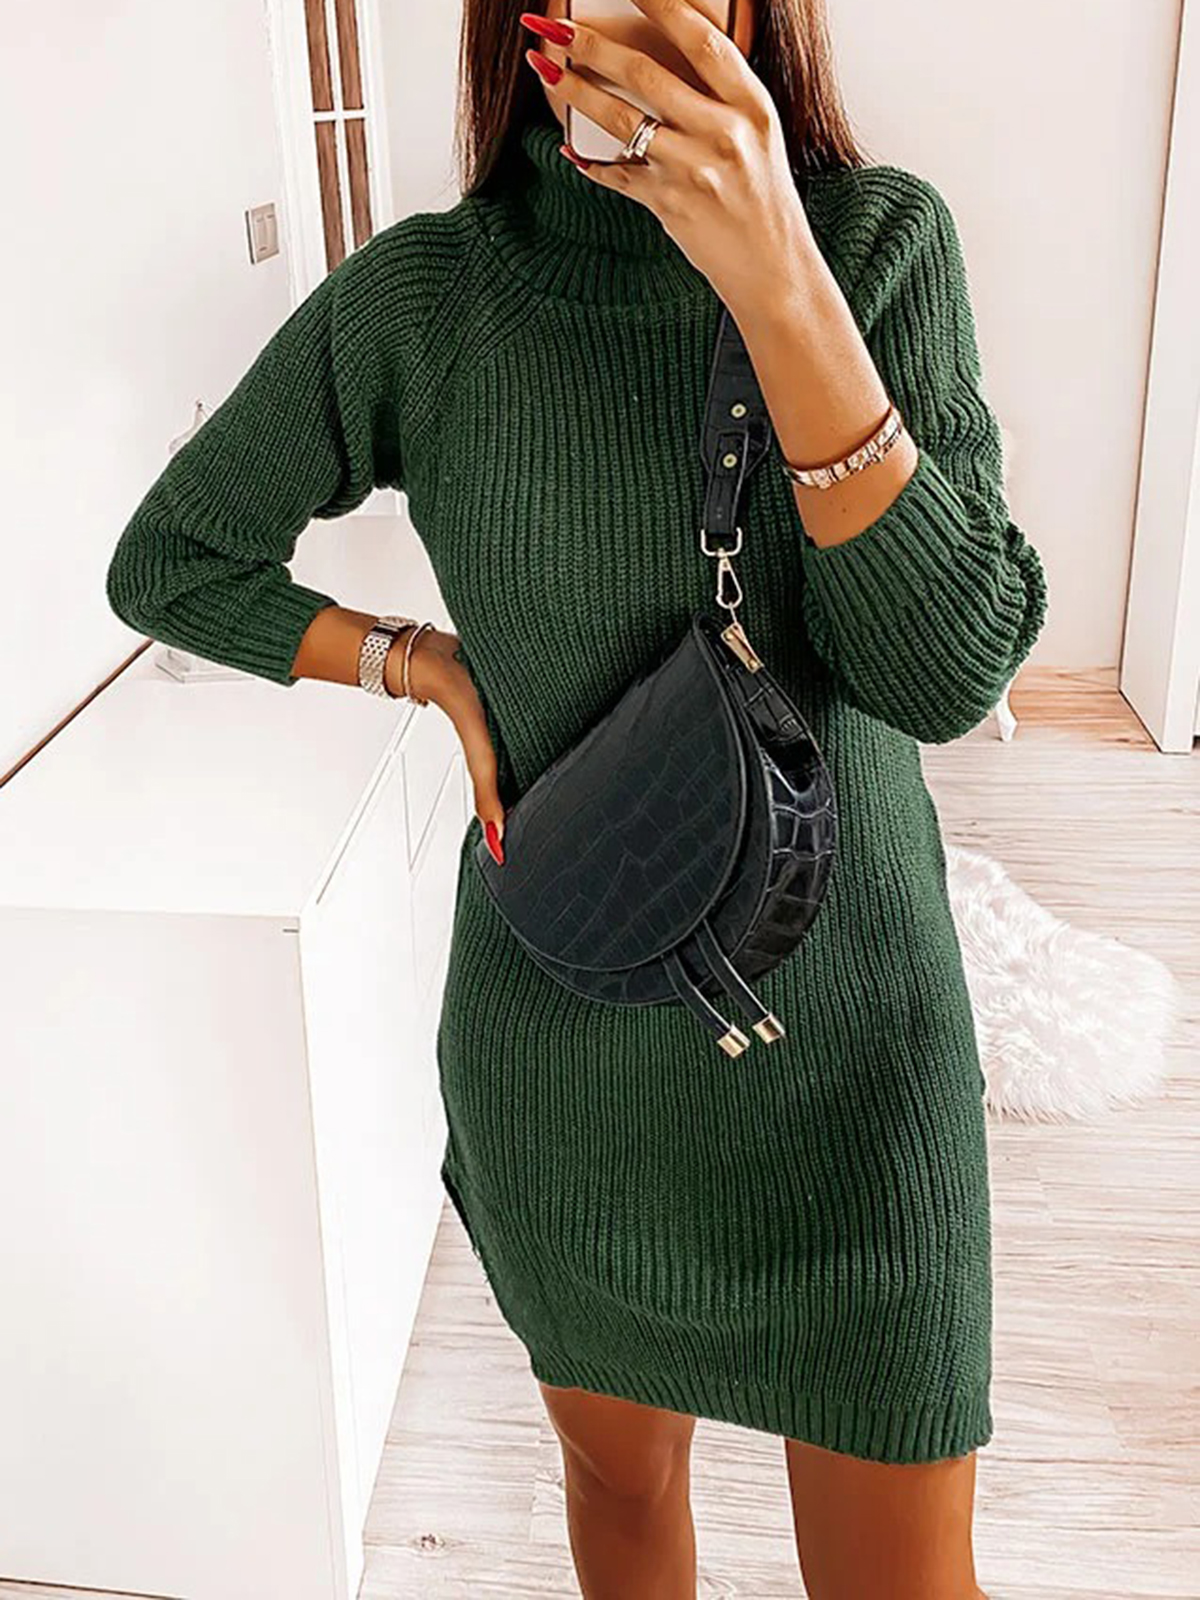 Women'S Autumn And Winter Knitted Sexy Multicolor Simple Sexy Dress